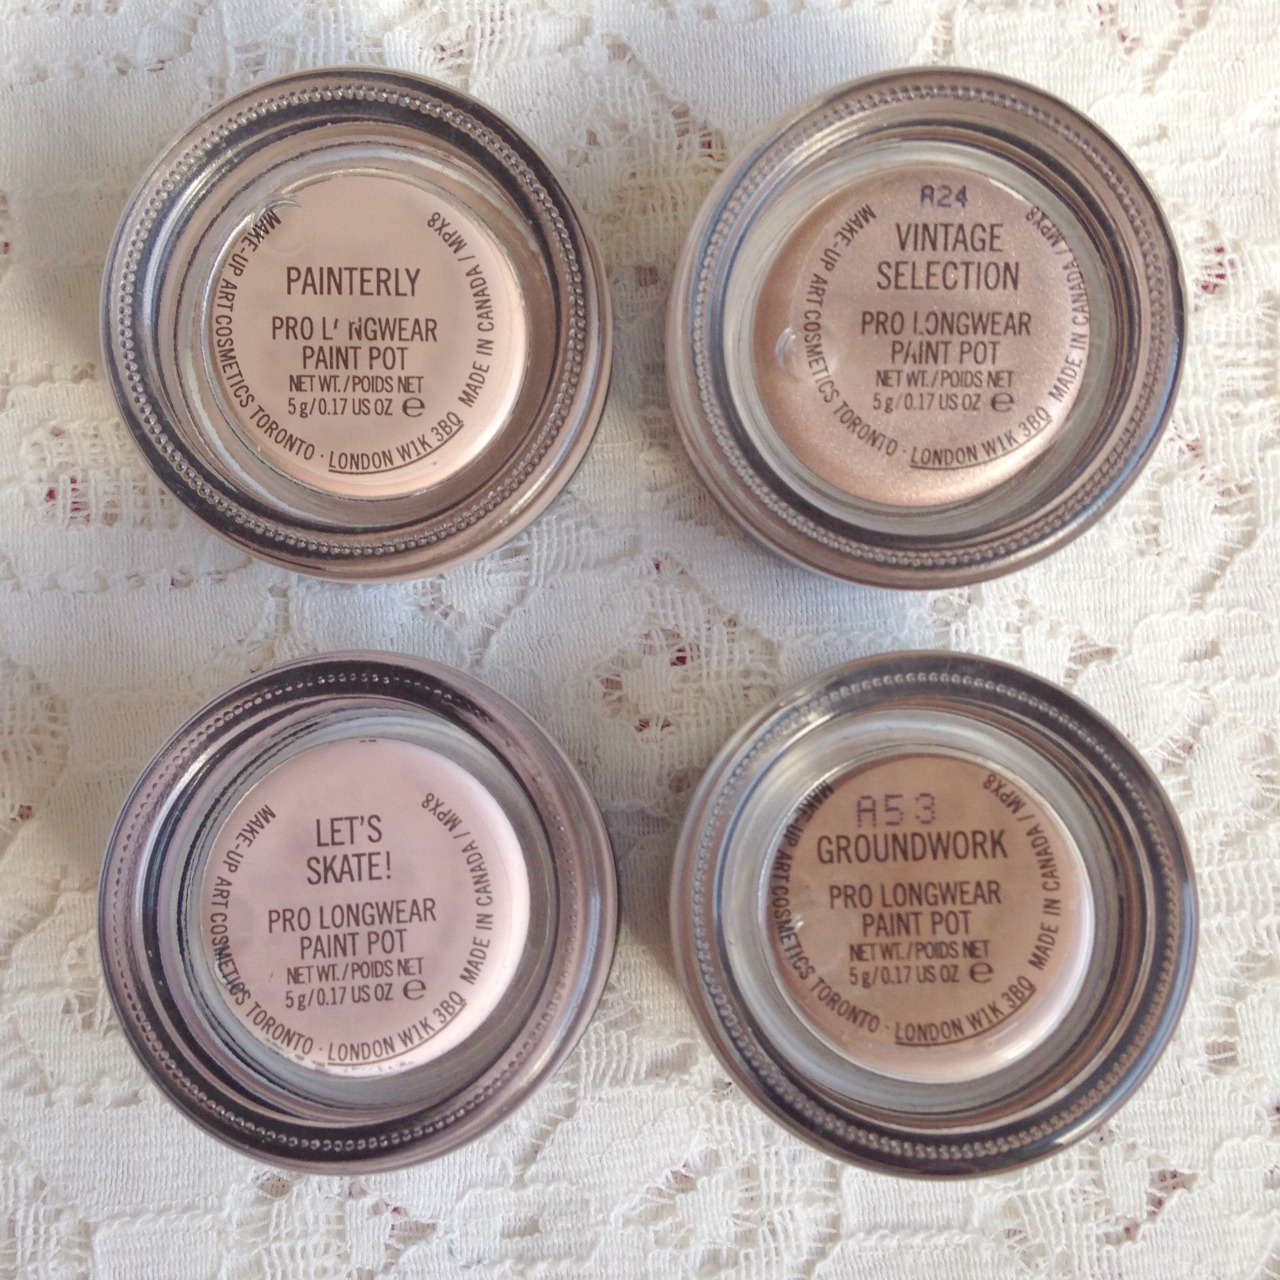 catherine mac paint pot collection painterly vintage selection let s skate groundwork